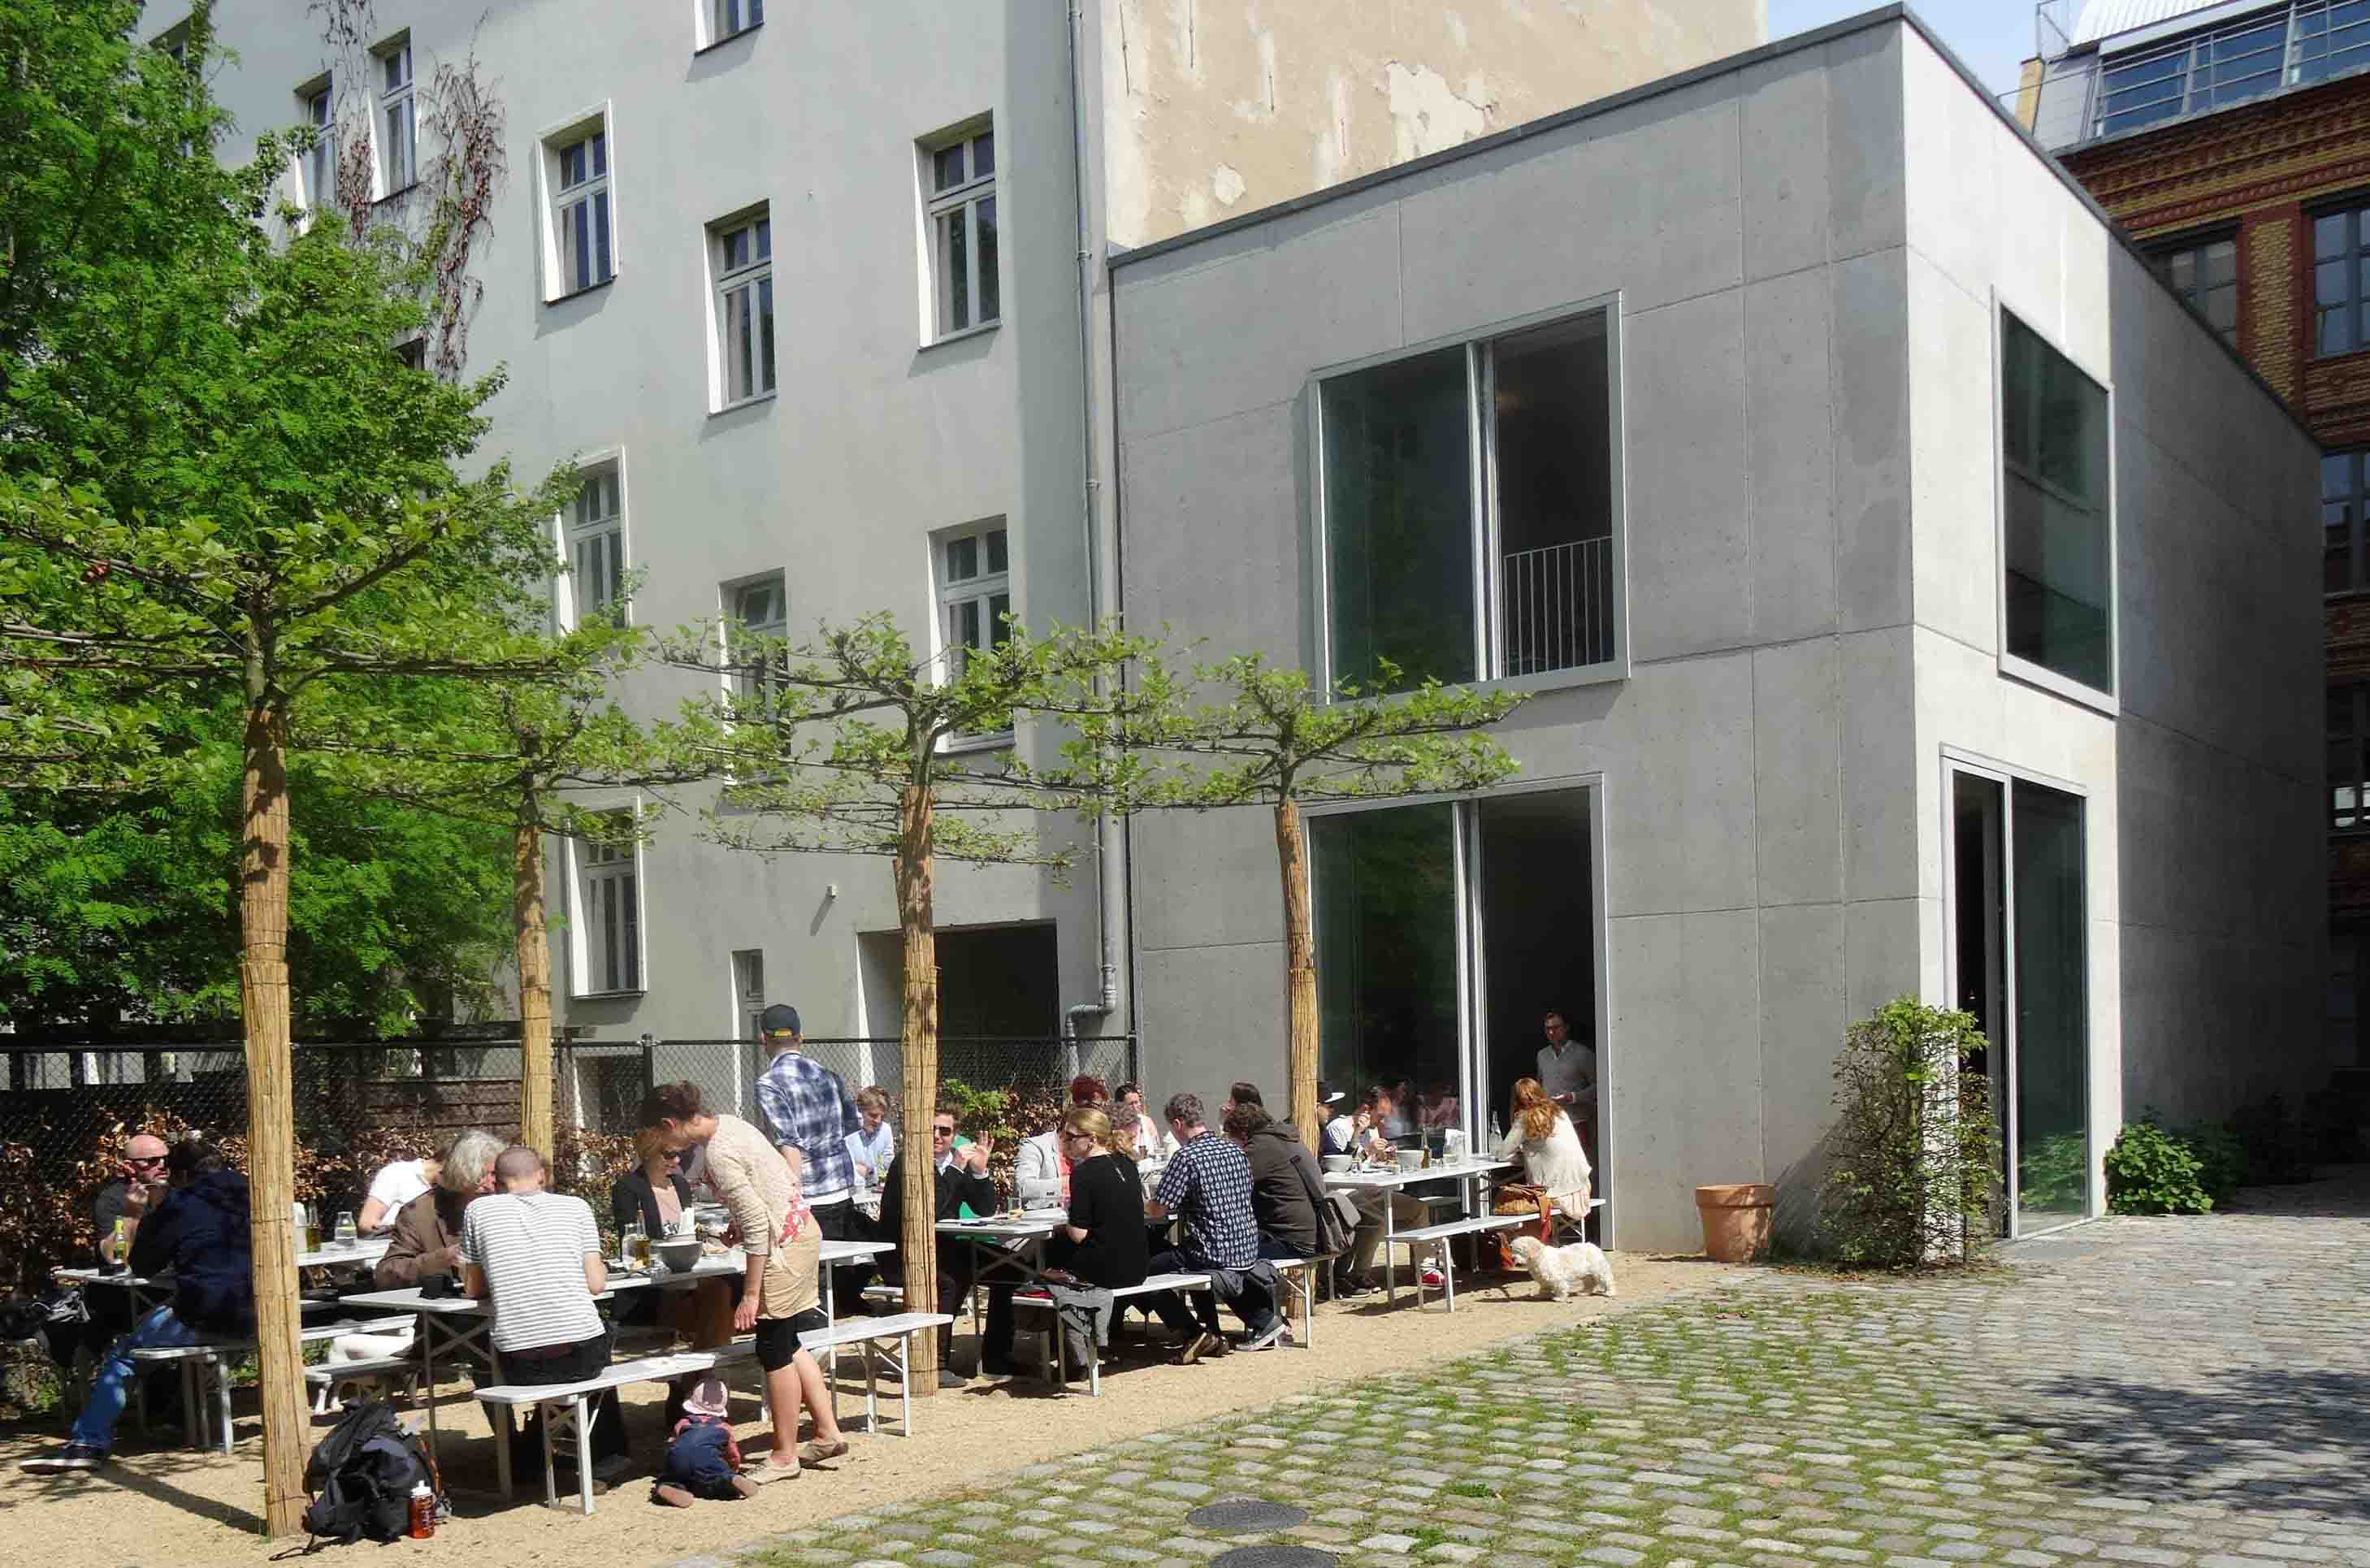 berlin restaurants in hidden courtyards a fun guide. Black Bedroom Furniture Sets. Home Design Ideas